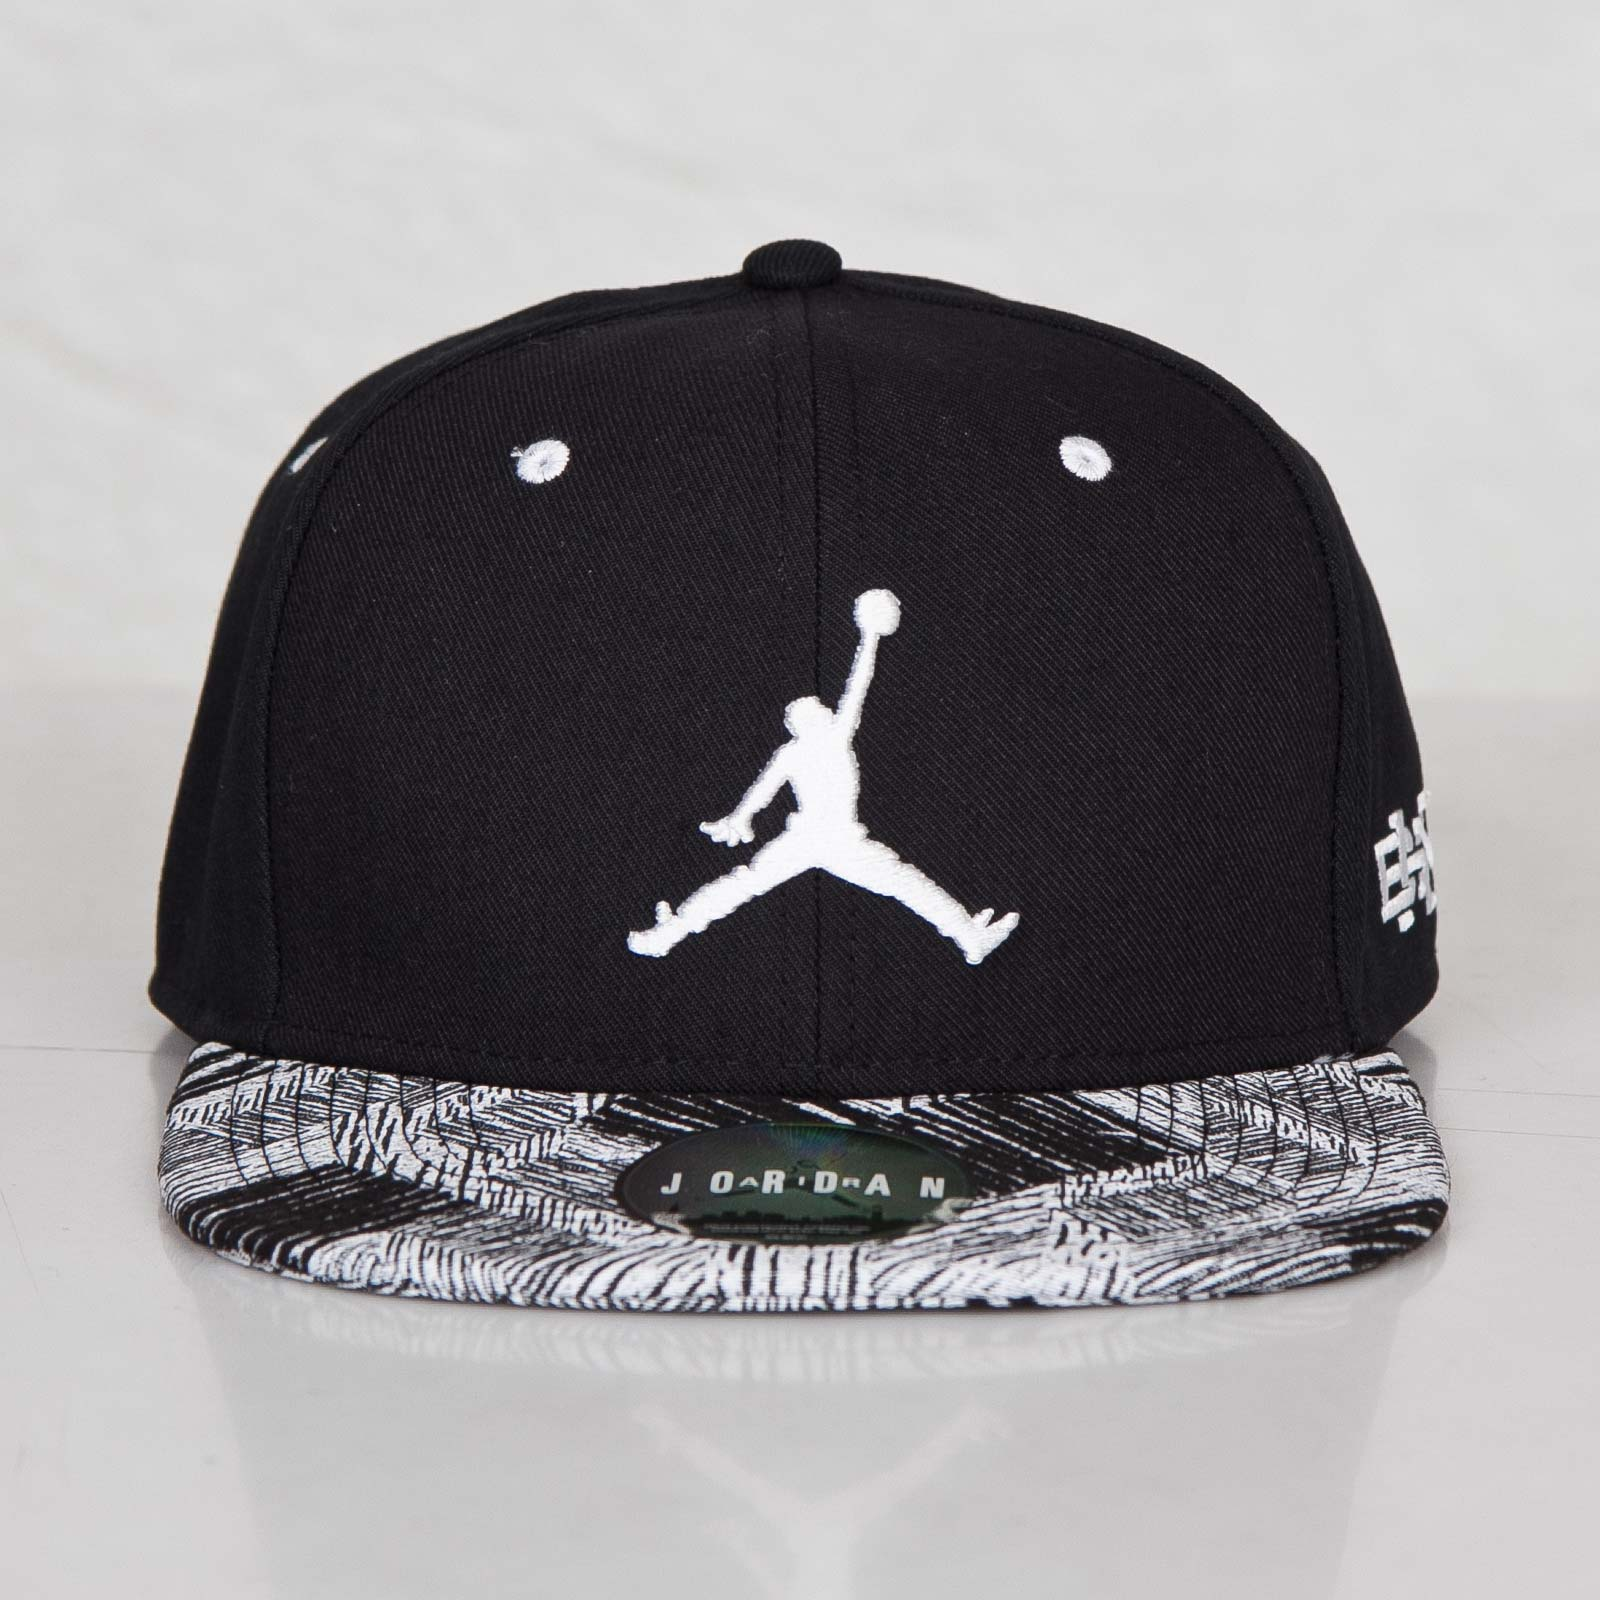 603e58dab62 ... where can i buy jordan brand bhm cap jordan brand bhm cap e0cd2 287a3